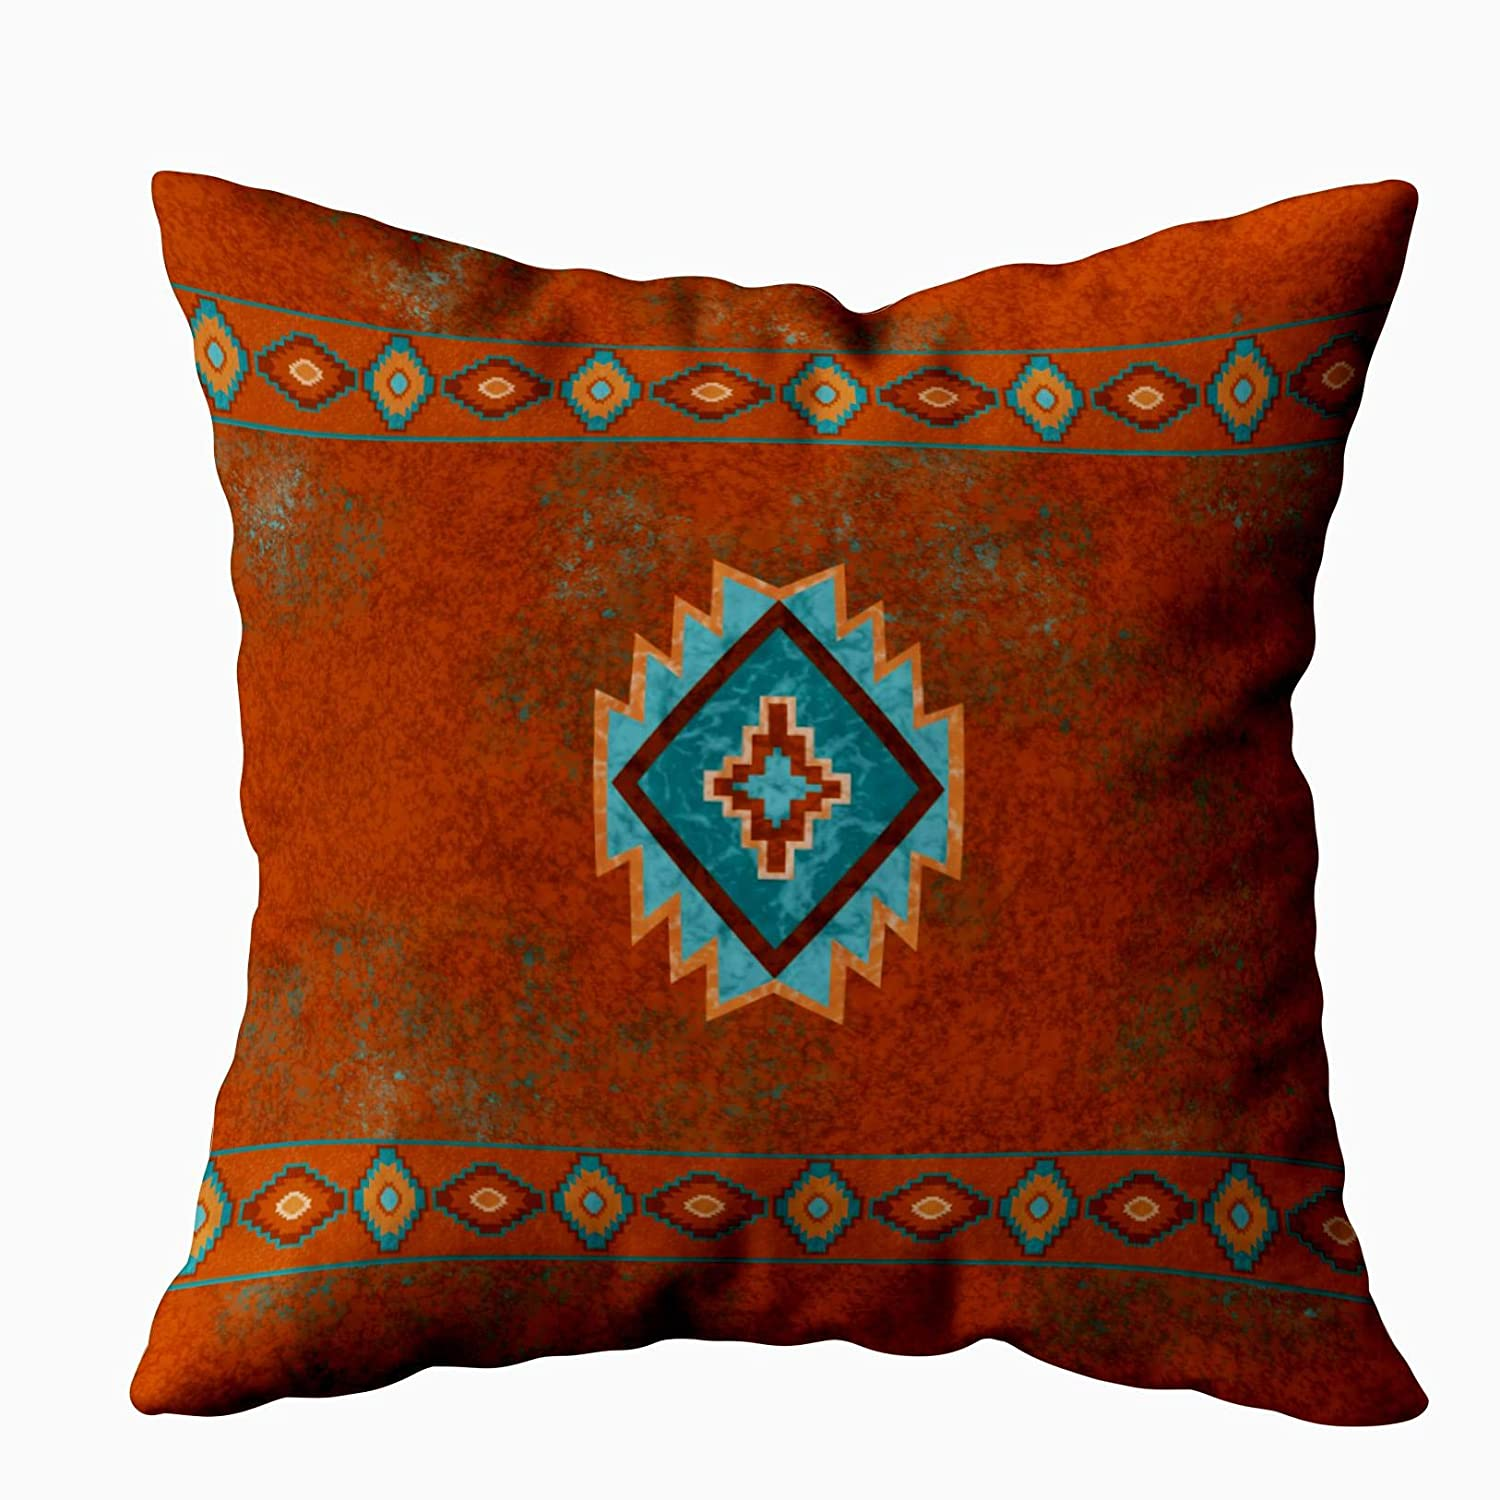 TOMKEY Hidden Zippered Pillowcase Southwest Canyons Diamond 18X18Inch,Decorative Throw Custom Cotton Pillow Case Cushion Cover for Home Sofas,bedrooms,Offices,and More